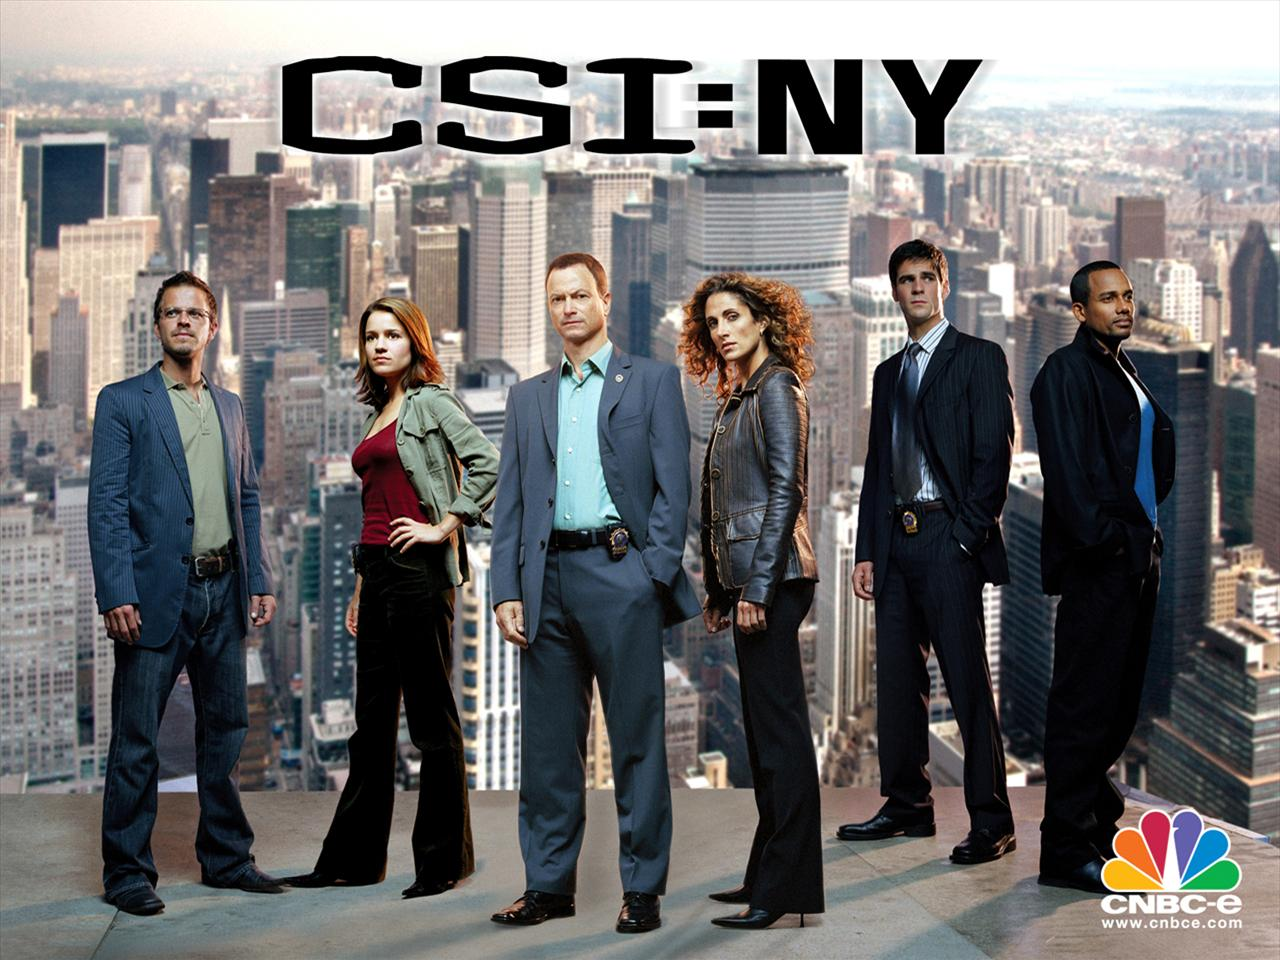 csi_ny_wallpaper_1280x960_1.jpg (1280×960)